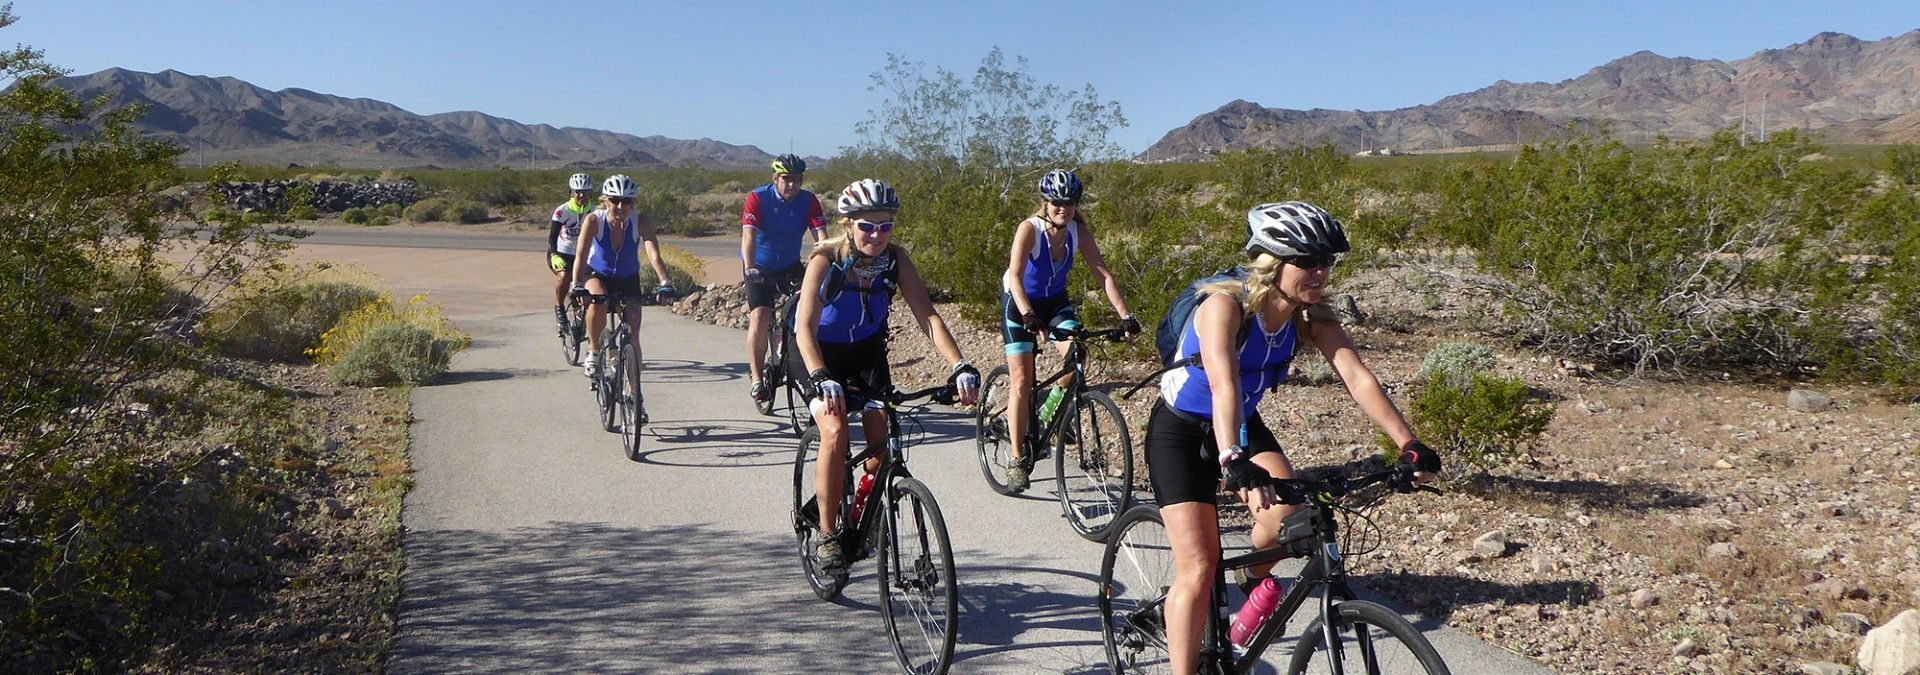 Group_of_Cyclists_Grand_Canyon_National_Park.jpg